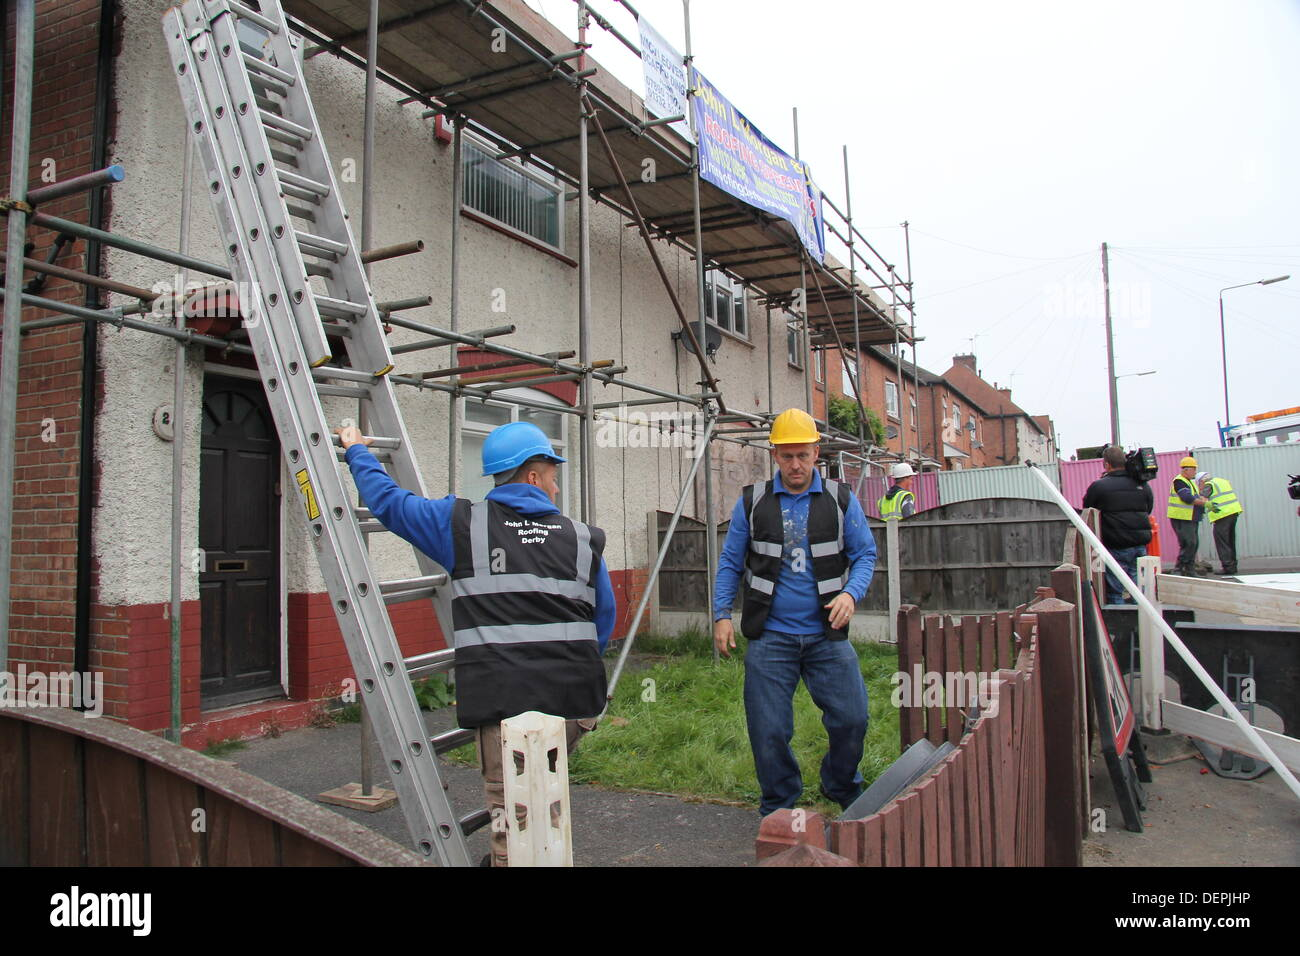 Derby, UK. 23 September 2013.  Contractors begin preliminary demolition work at 18 Victory Road, Allenton where the Philpott's six children died in a fire, and number 20, the semi-detached it adjoins. Derby City Council say the demolition process is likely to take up to three weeks; week one to prepare the site and a further two weeks to take down both properties, beginning with the outbuildings and roofing structures. A planning application for new housing on the site has been submitted. - Stock Image